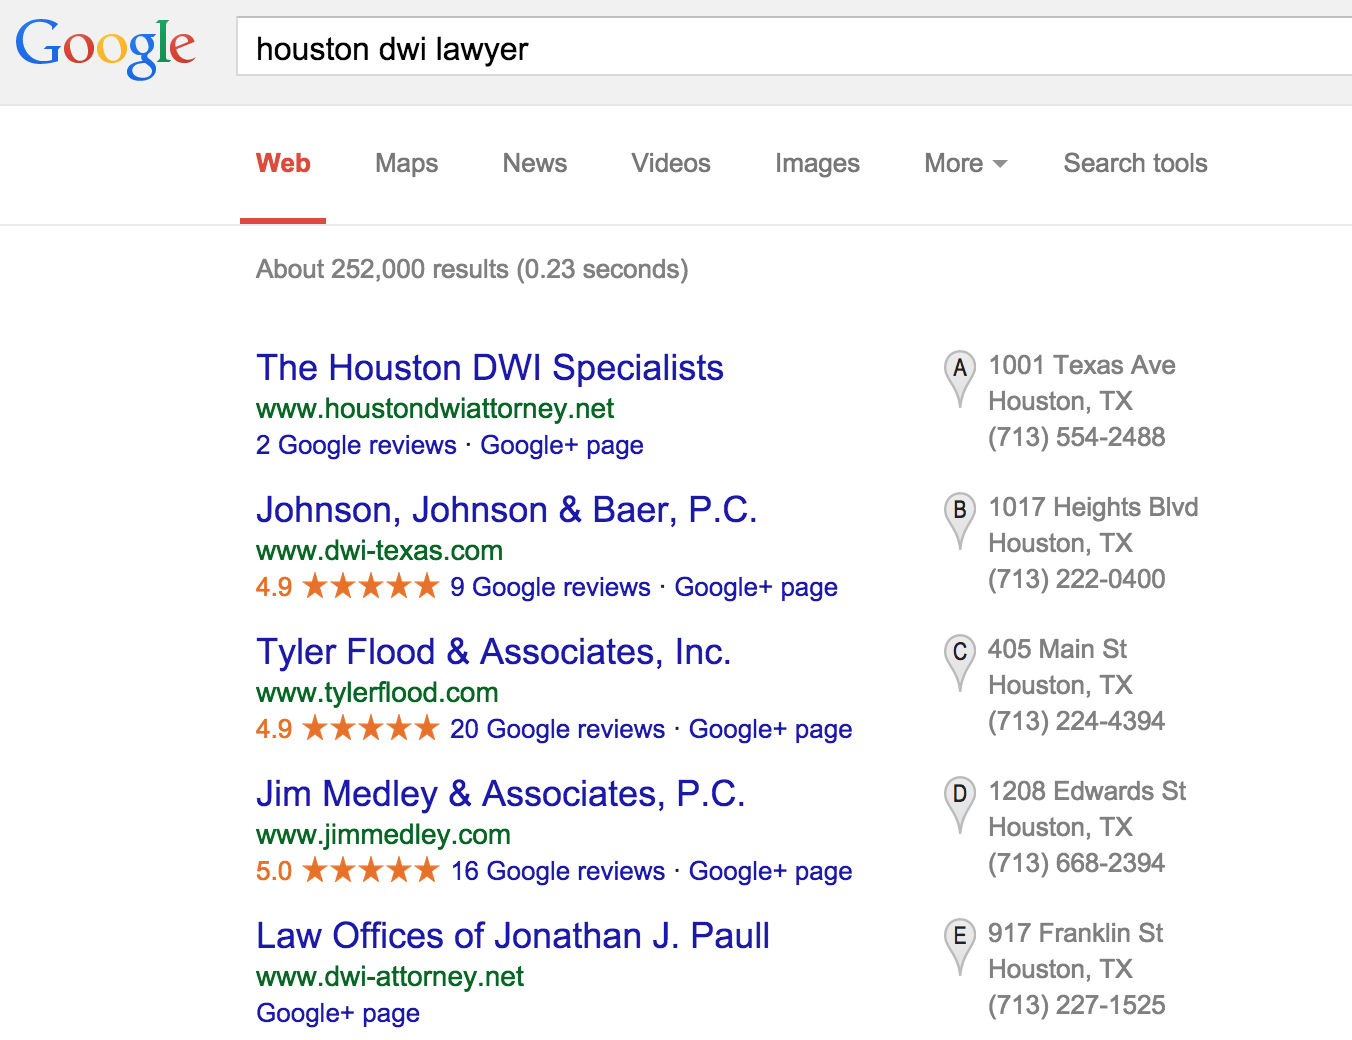 houston-dwi-lawyer-seo-google-search